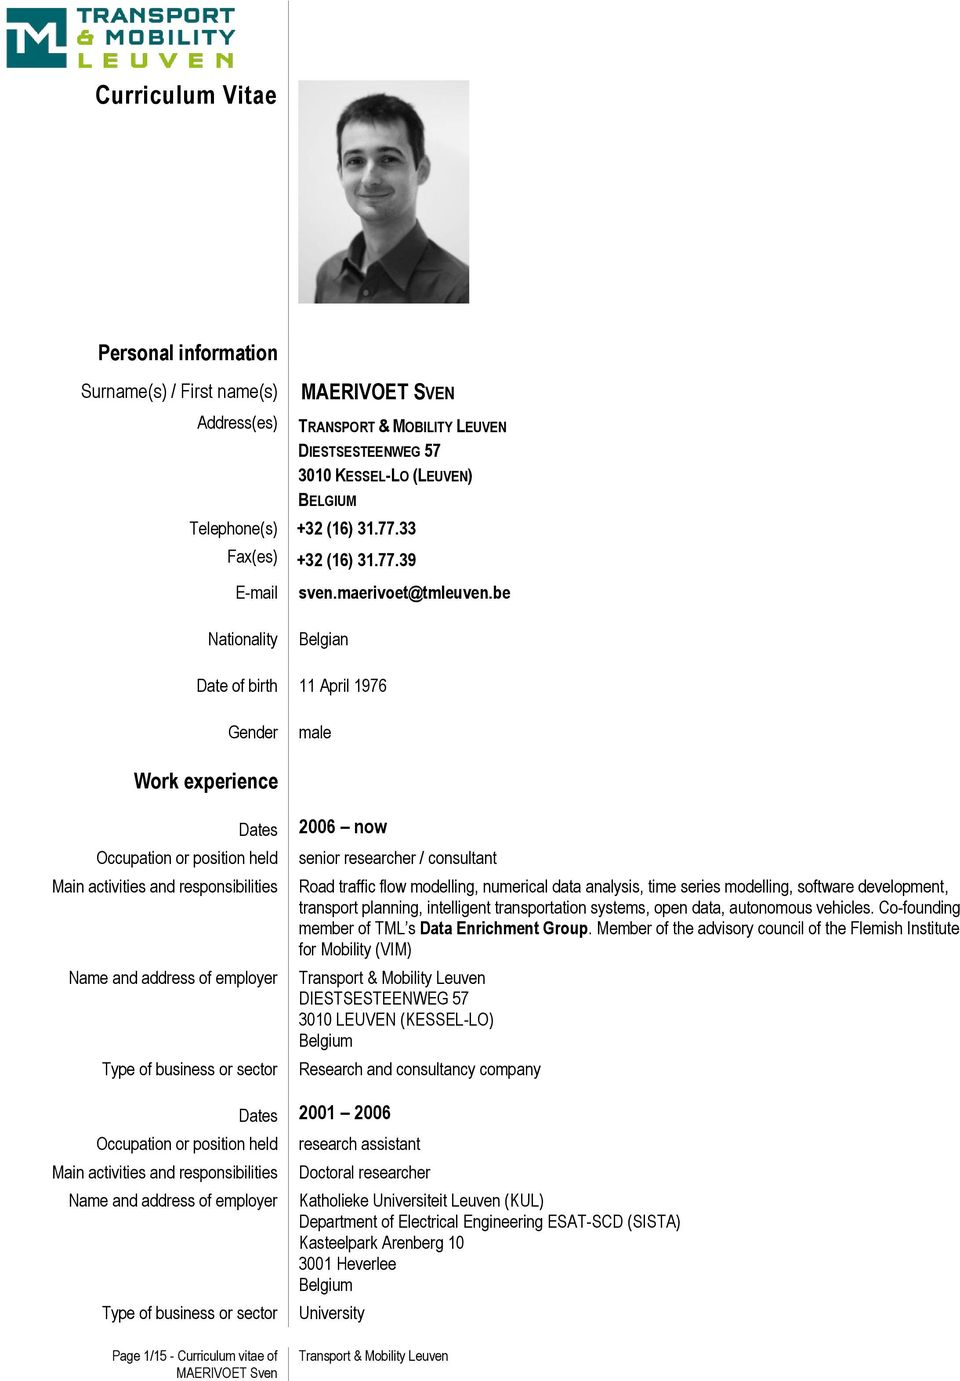 be Belgian Date of birth 11 April 1976 Gender male Work experience Dates Occupation or position held Main activities and responsibilities Name and address of employer Type of business or sector 2006